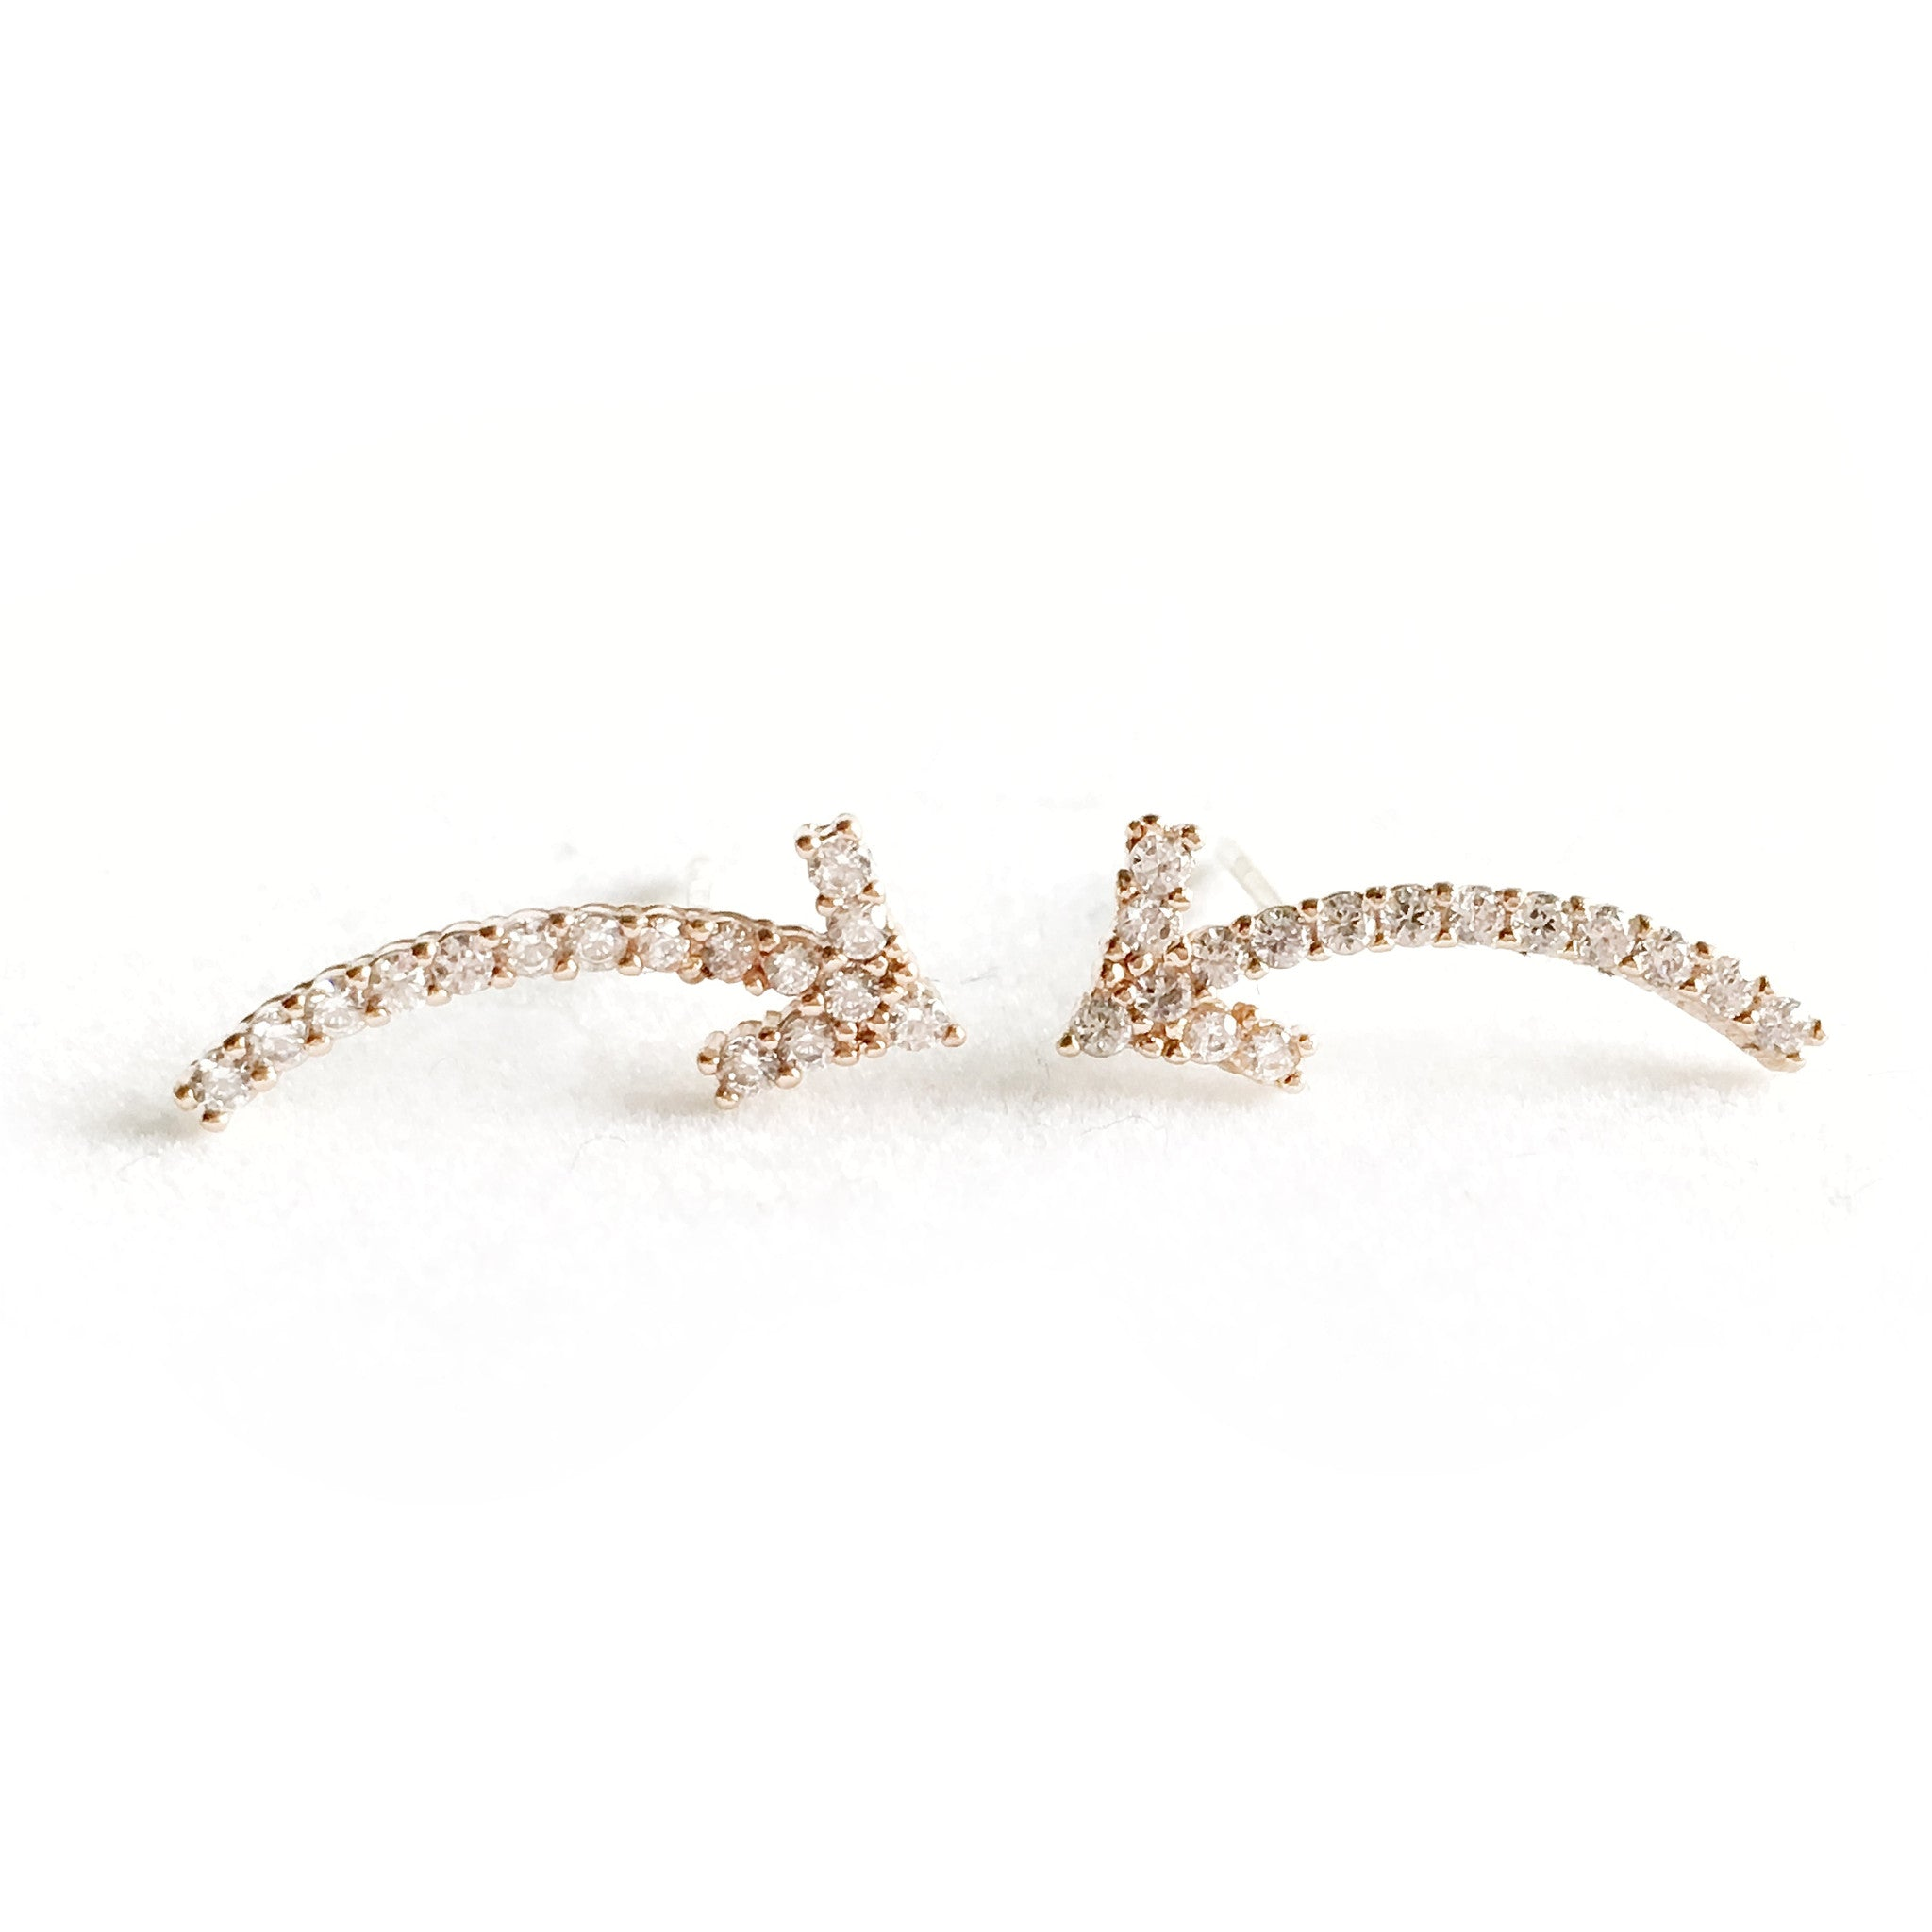 Willow Bronze Earrings - Micha Store